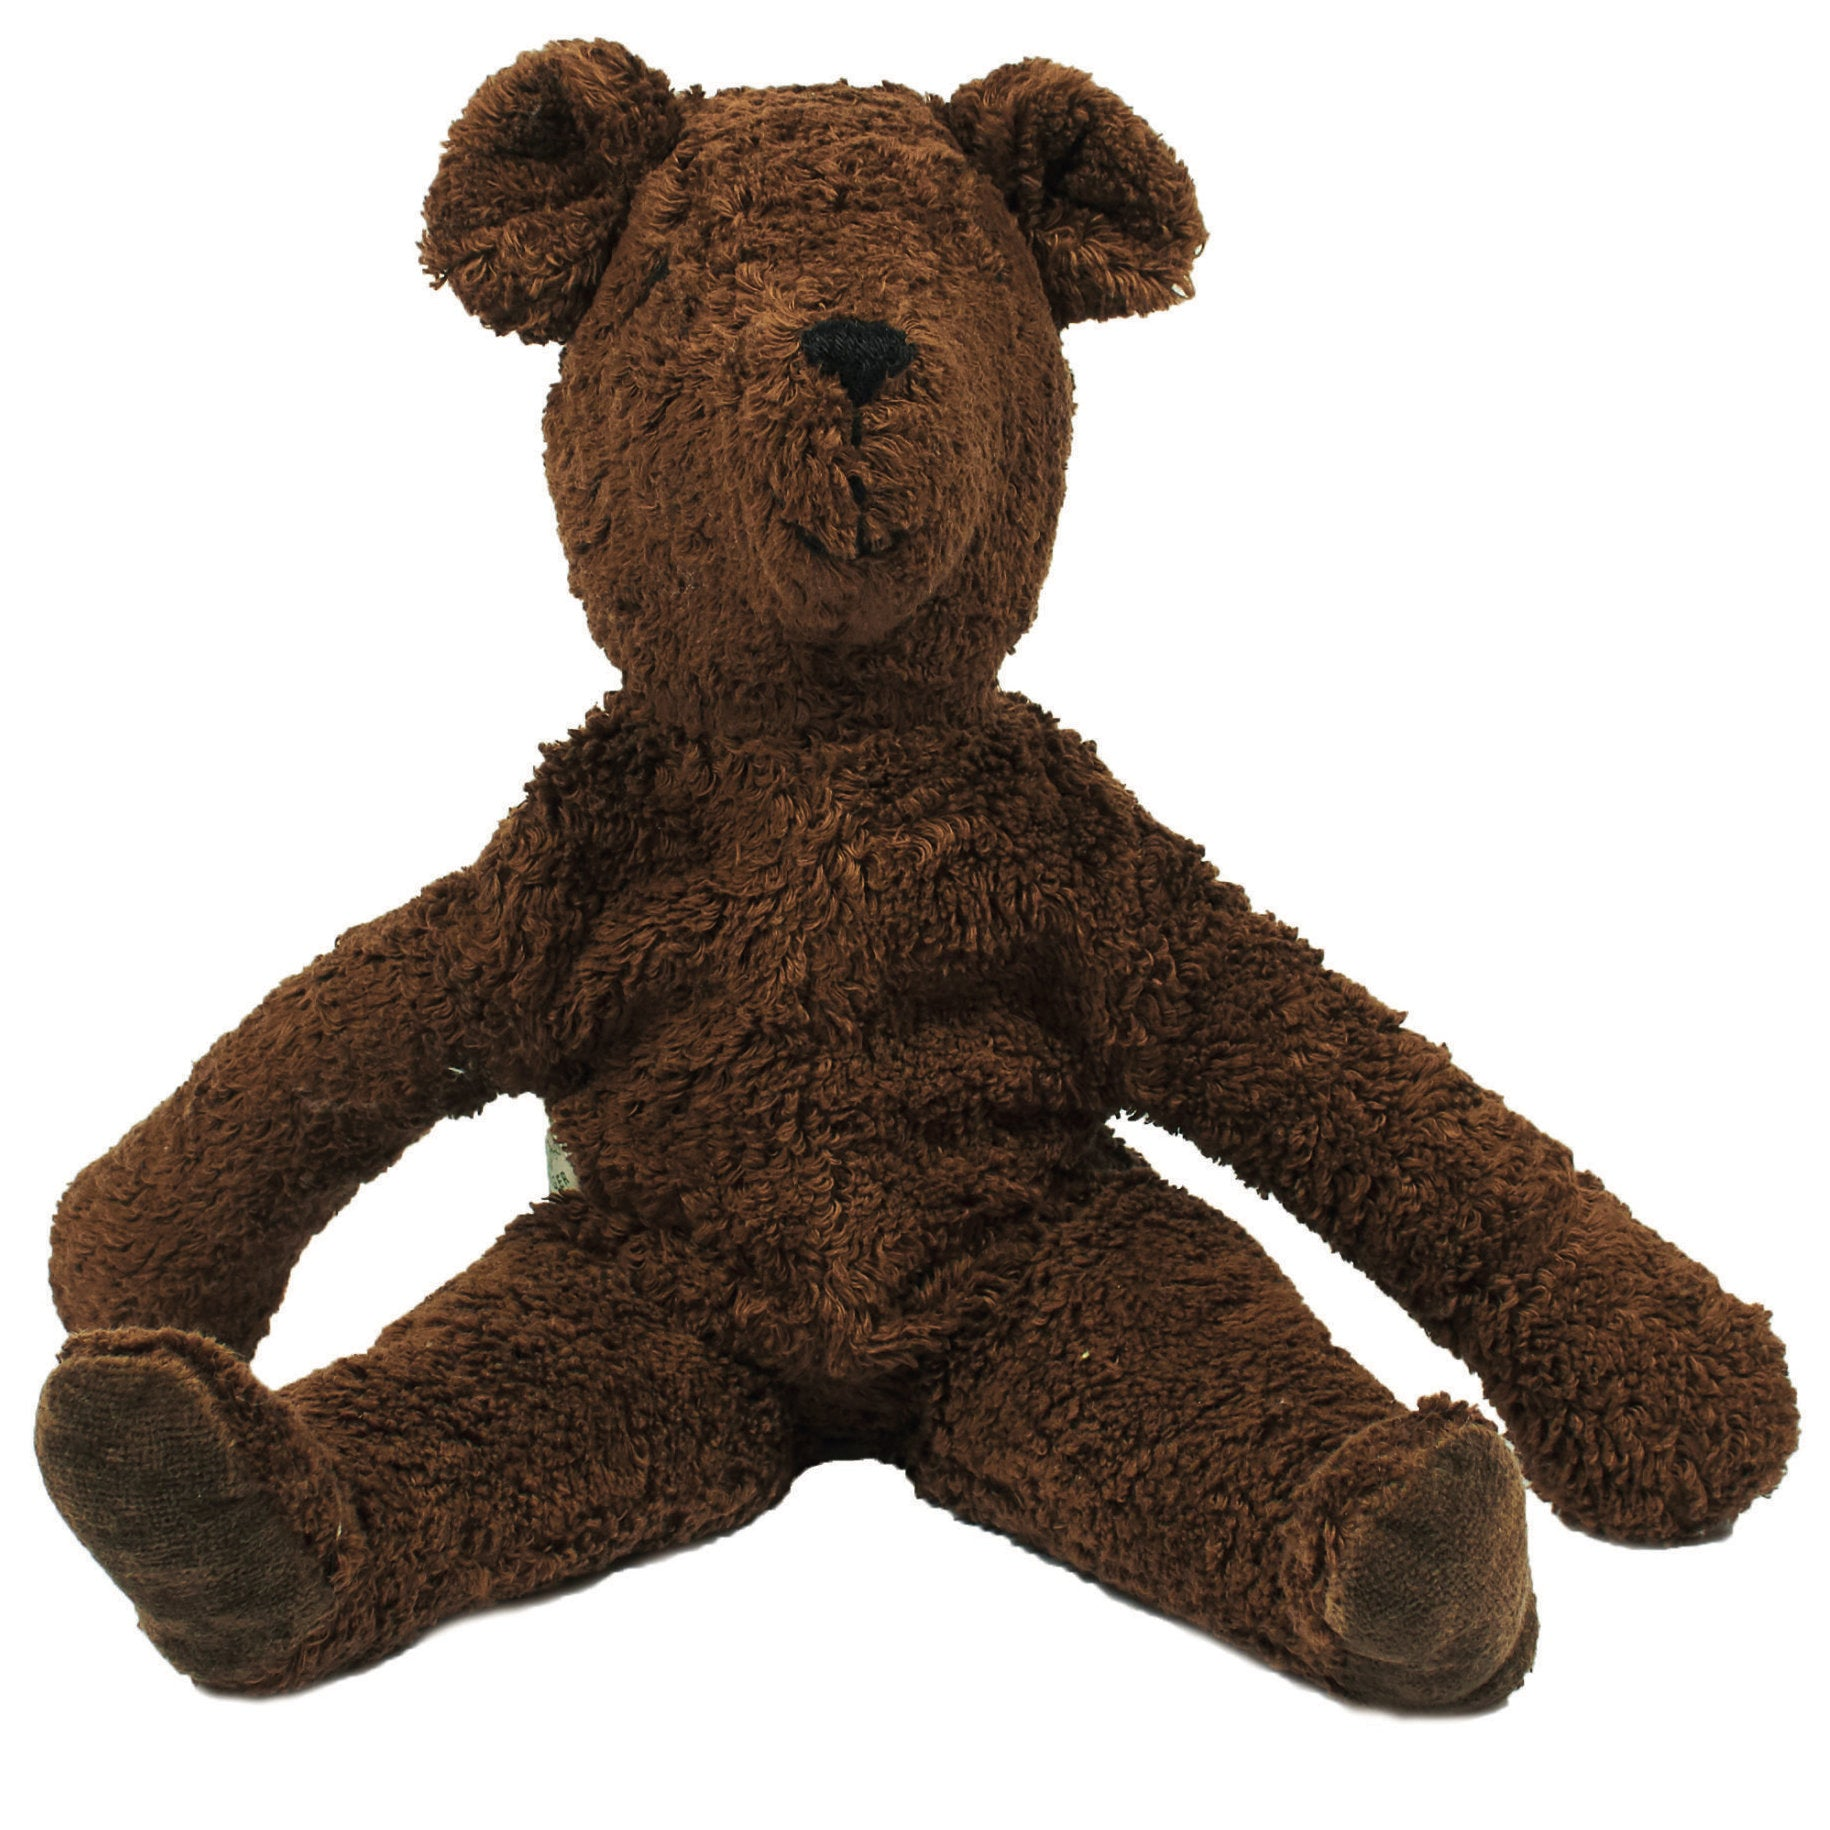 Senger Naturwelt organic cotton large bear in brown